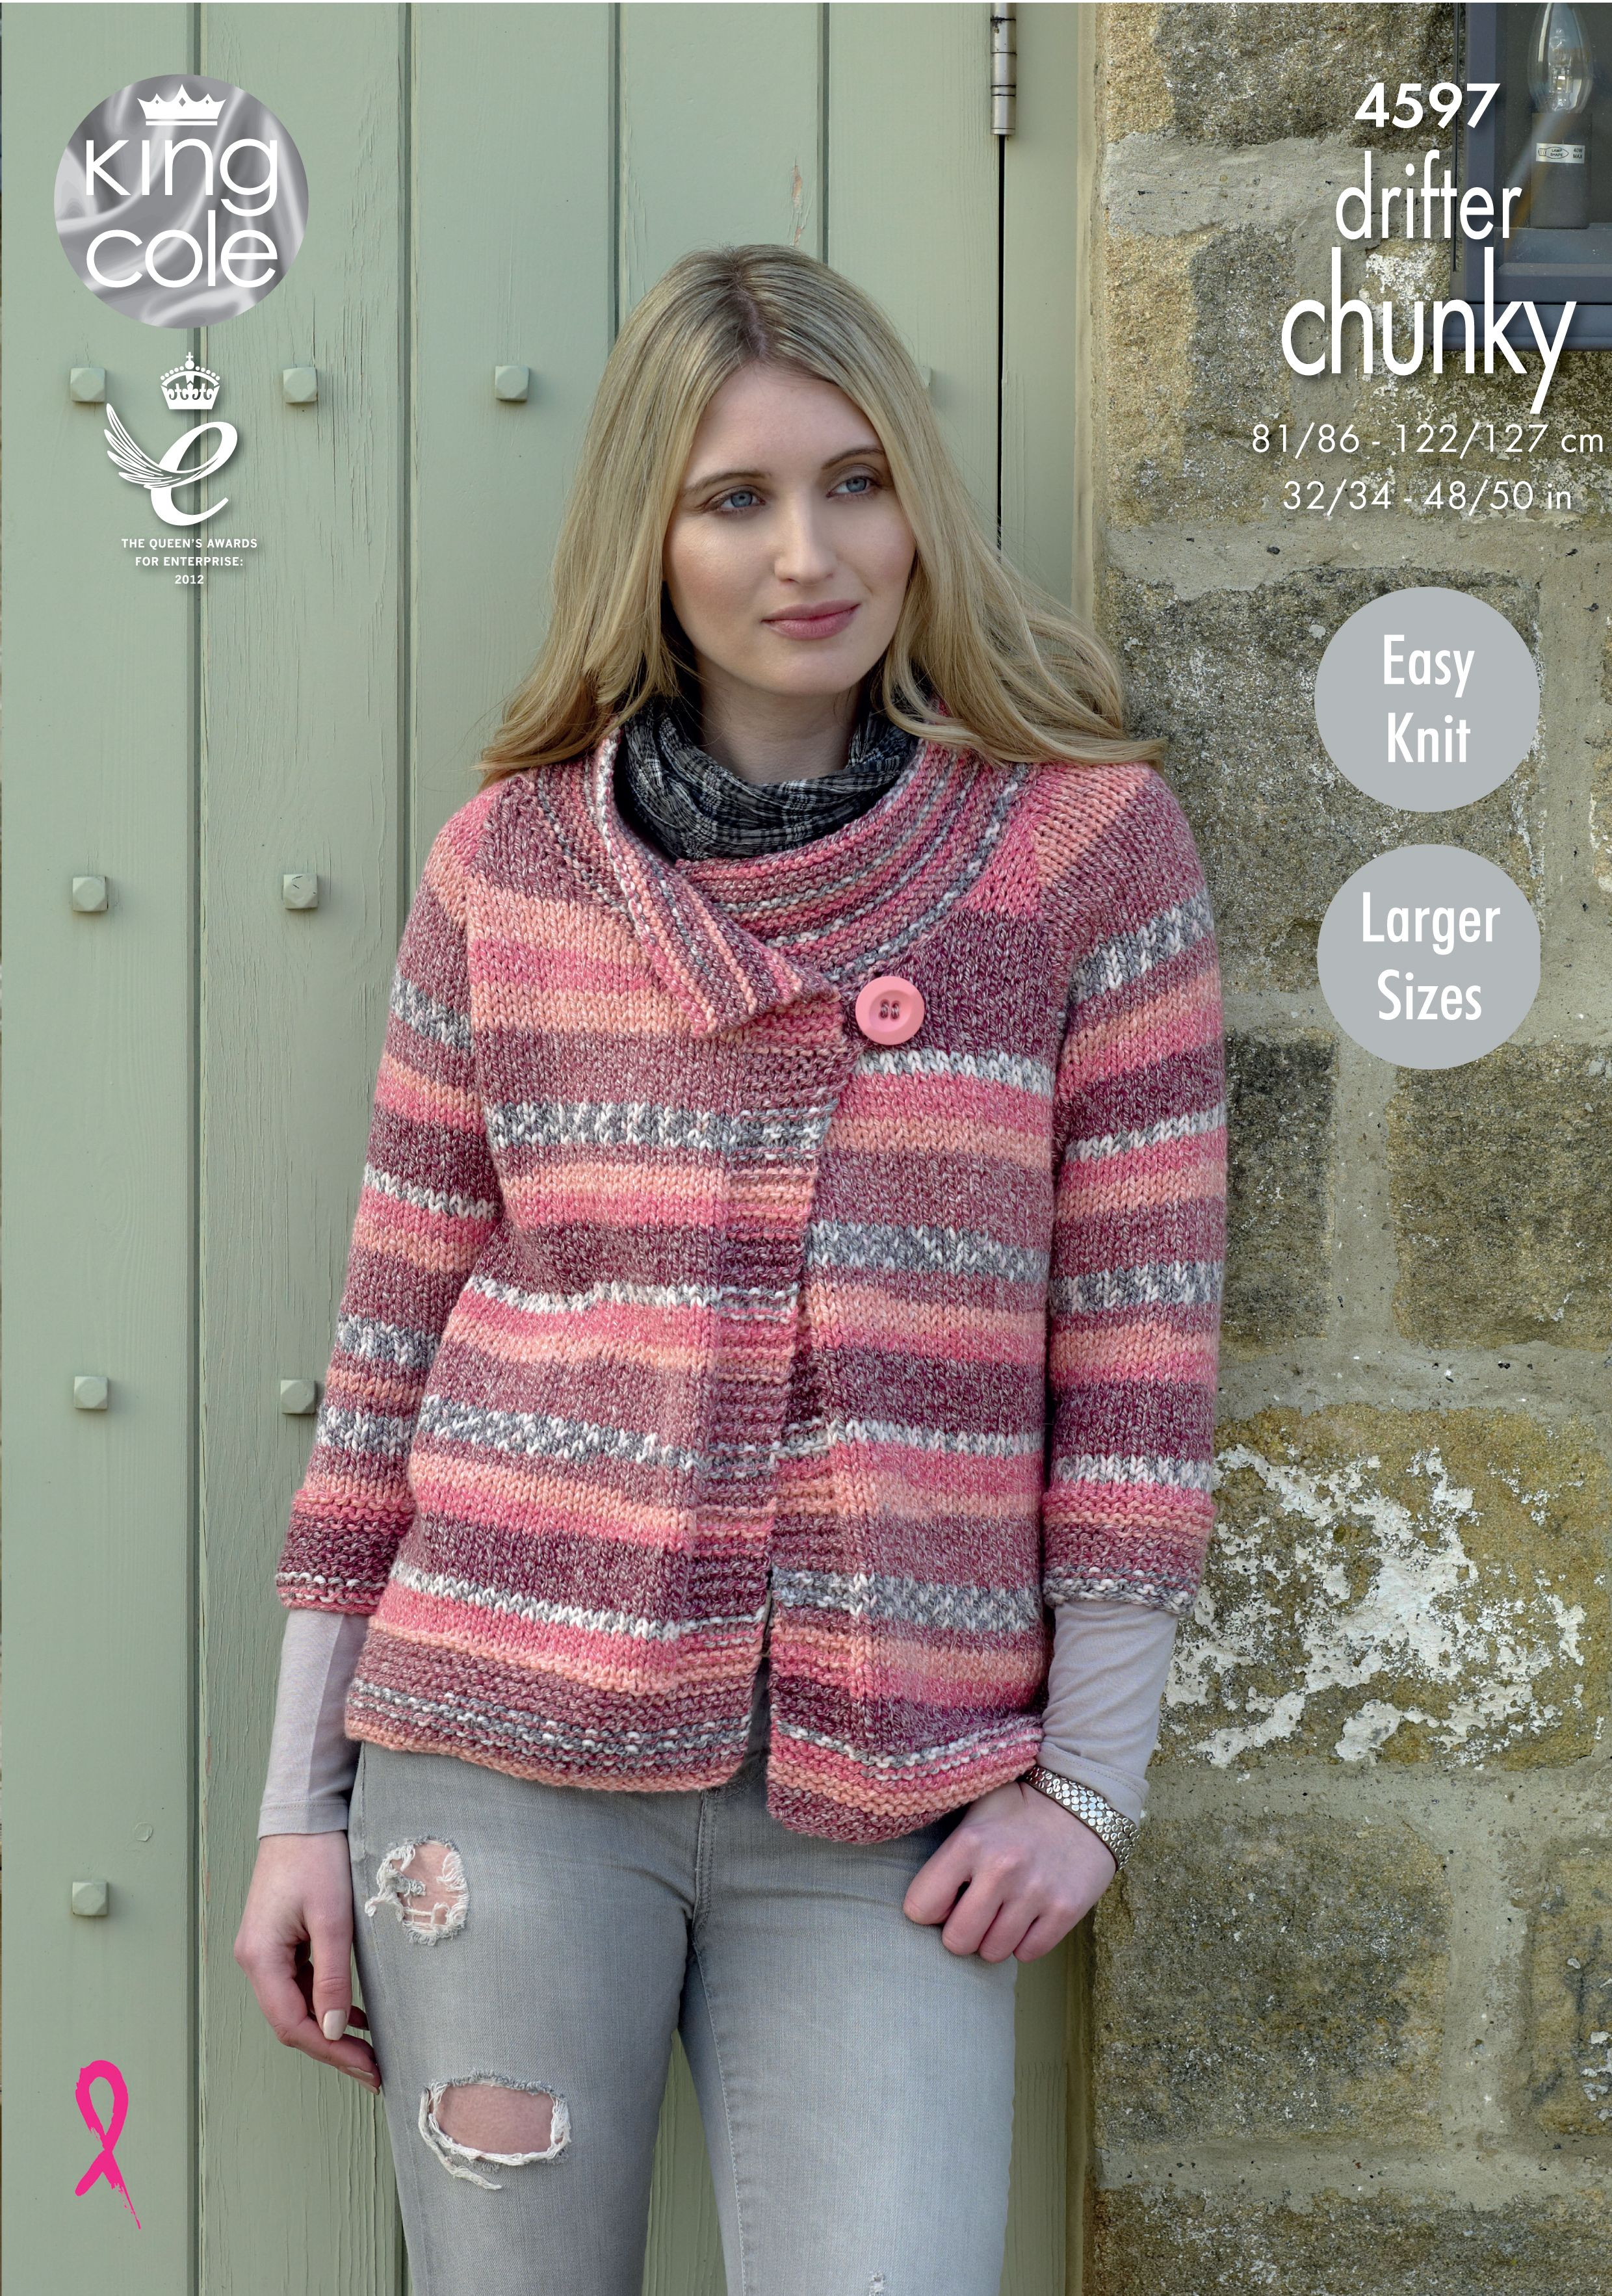 2654ec48306e0 Knitted ladies jacket with 3 4 length sleeves - Self Stripping Yarn King  Cole